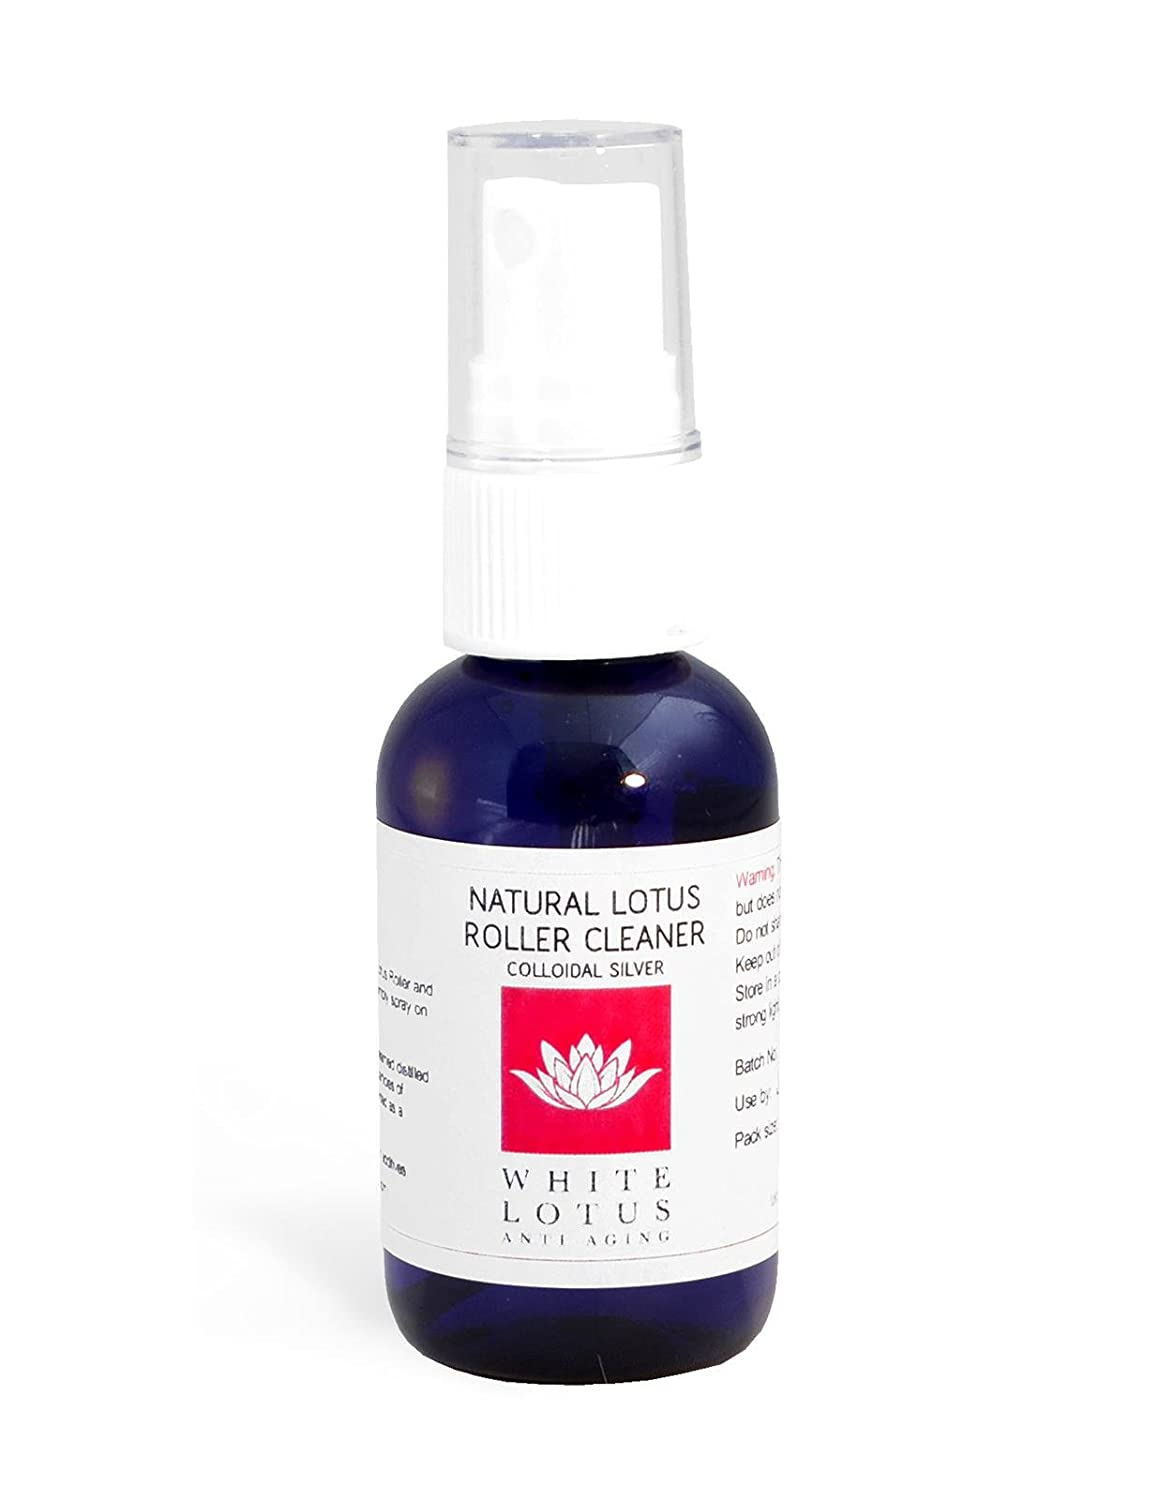 White Lotus Anti Aging Natural Derma Roller Cleaner 50ML- The Natural Dermaroller Cleaner Kills 99.99% of Bacteria, Antibacterial, Antifungal, Anti viral Pump Spray To Disinfect Skin Needling Products